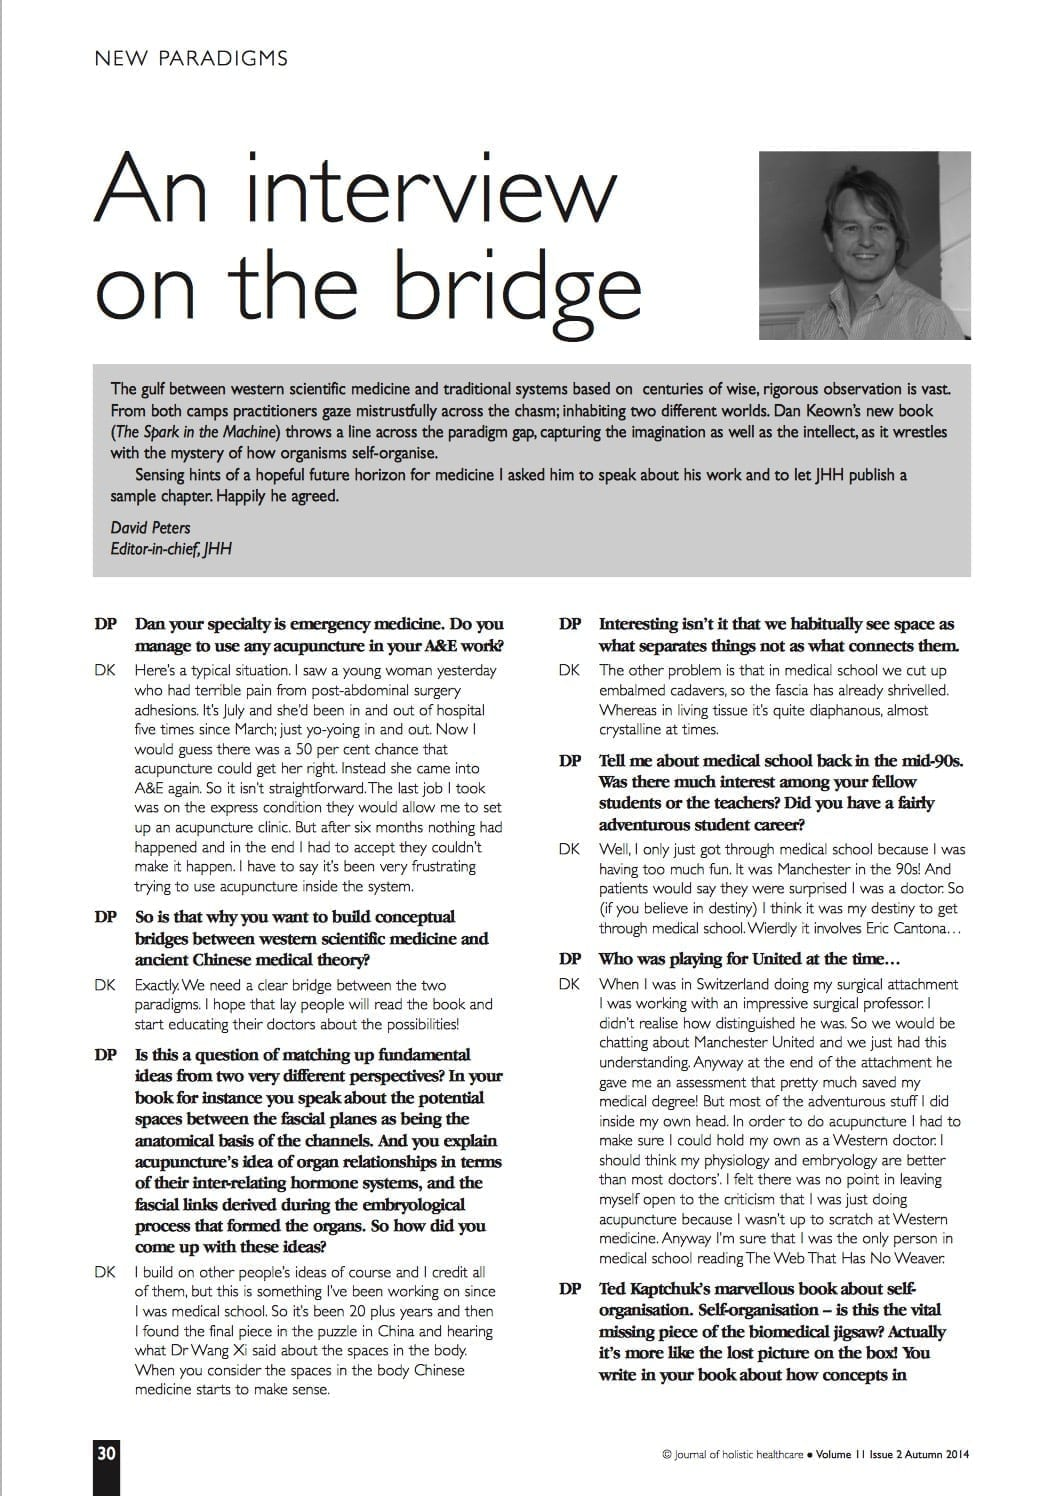 11.2.8 an interview on the bridge